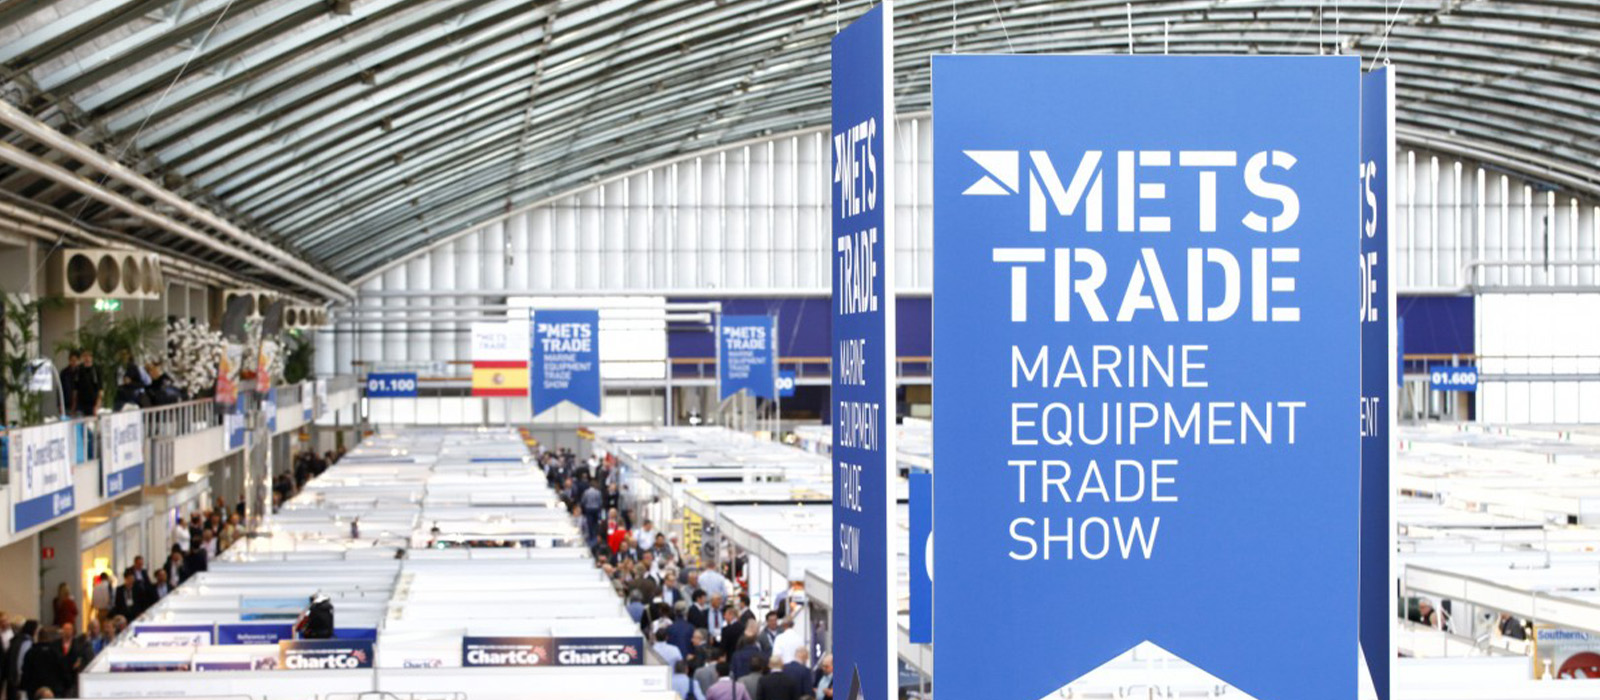 METS-Marine-Equipment-Trade-Show-Amsterdam-Superyacht-Brokerage-Insurance-Policy-Proffessional-Show.jpg